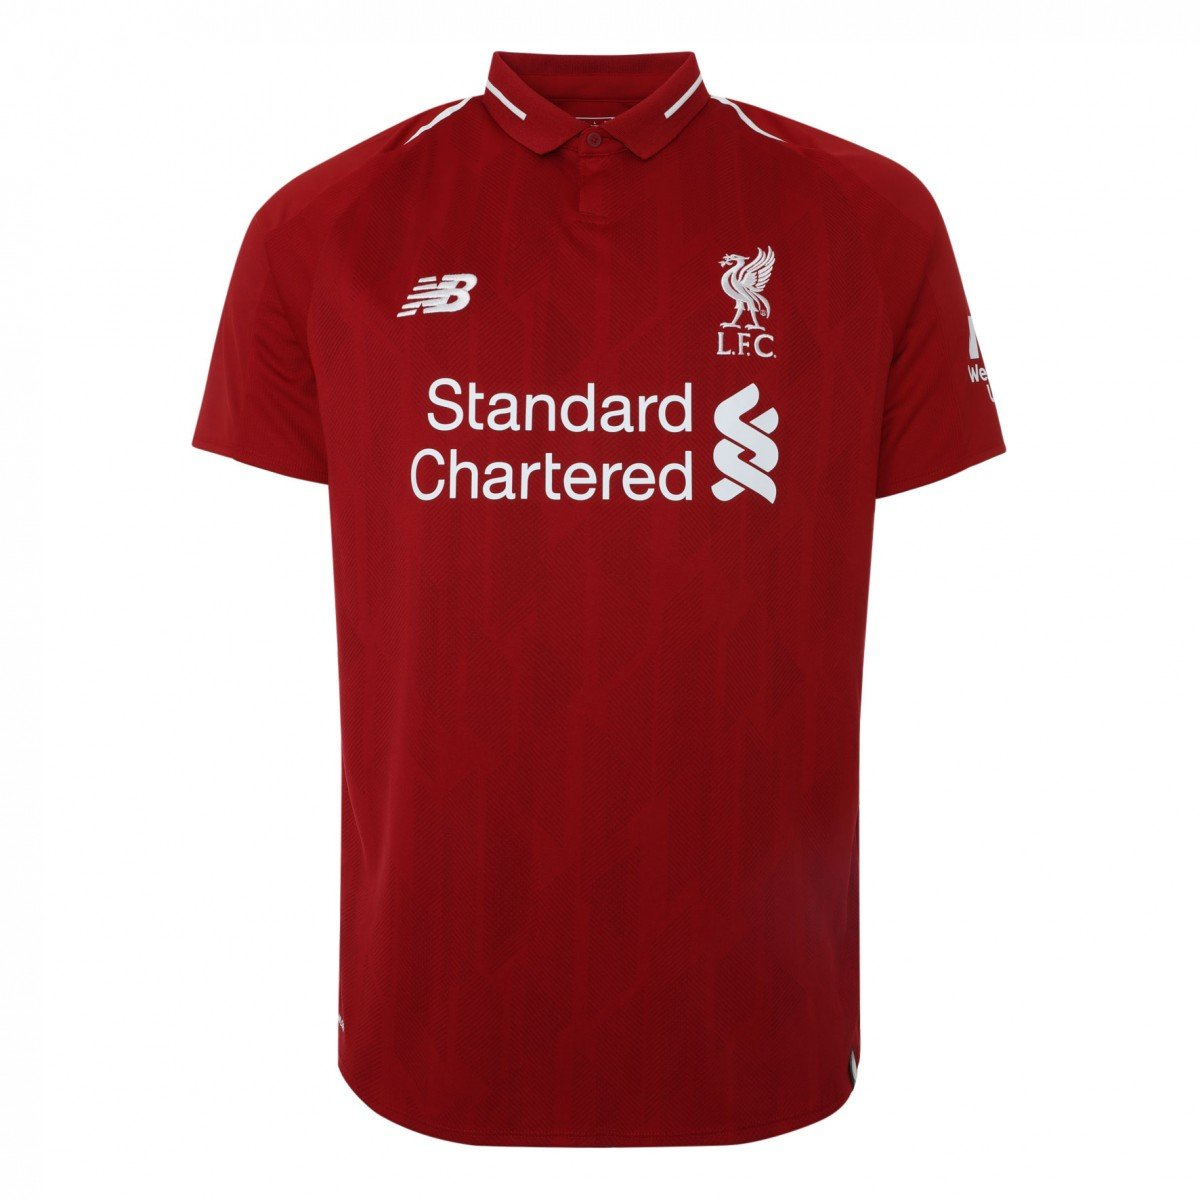 new product b50ce 73f86 2018-2019 Liverpool Home Football Soccer T-Shirt Jersey (Mohammad Salah 11)